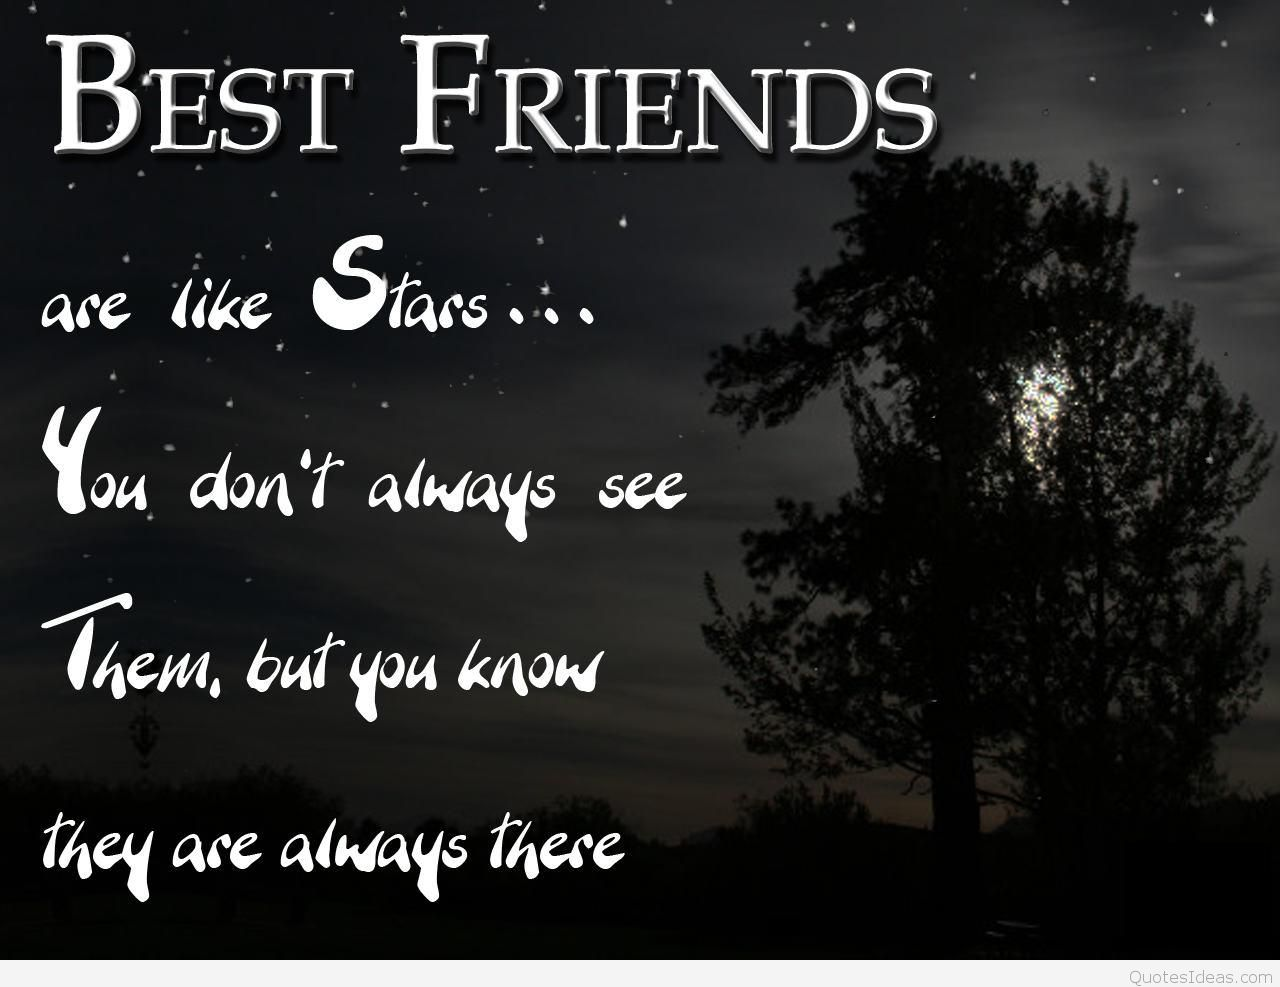 Best Friend Wallpapers With Quotes wwwgalleryhipcom 1280x987